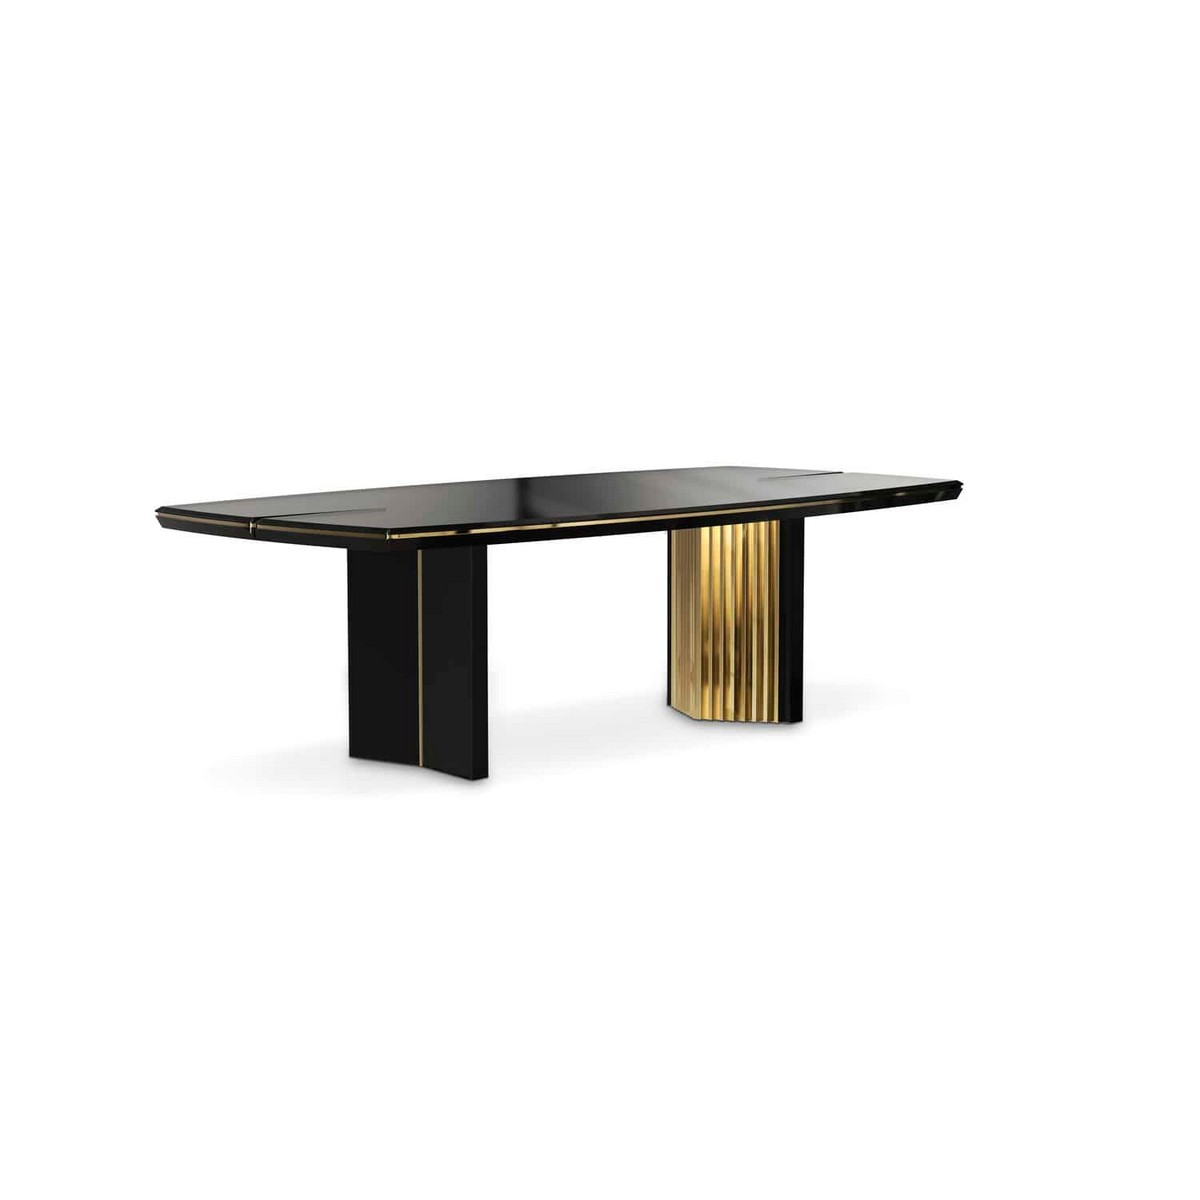 Exclusive Design: Top Rectangular Dining Tables rectangular dining tables Exclusive Design: Top Rectangular Dining Tables beyond 1